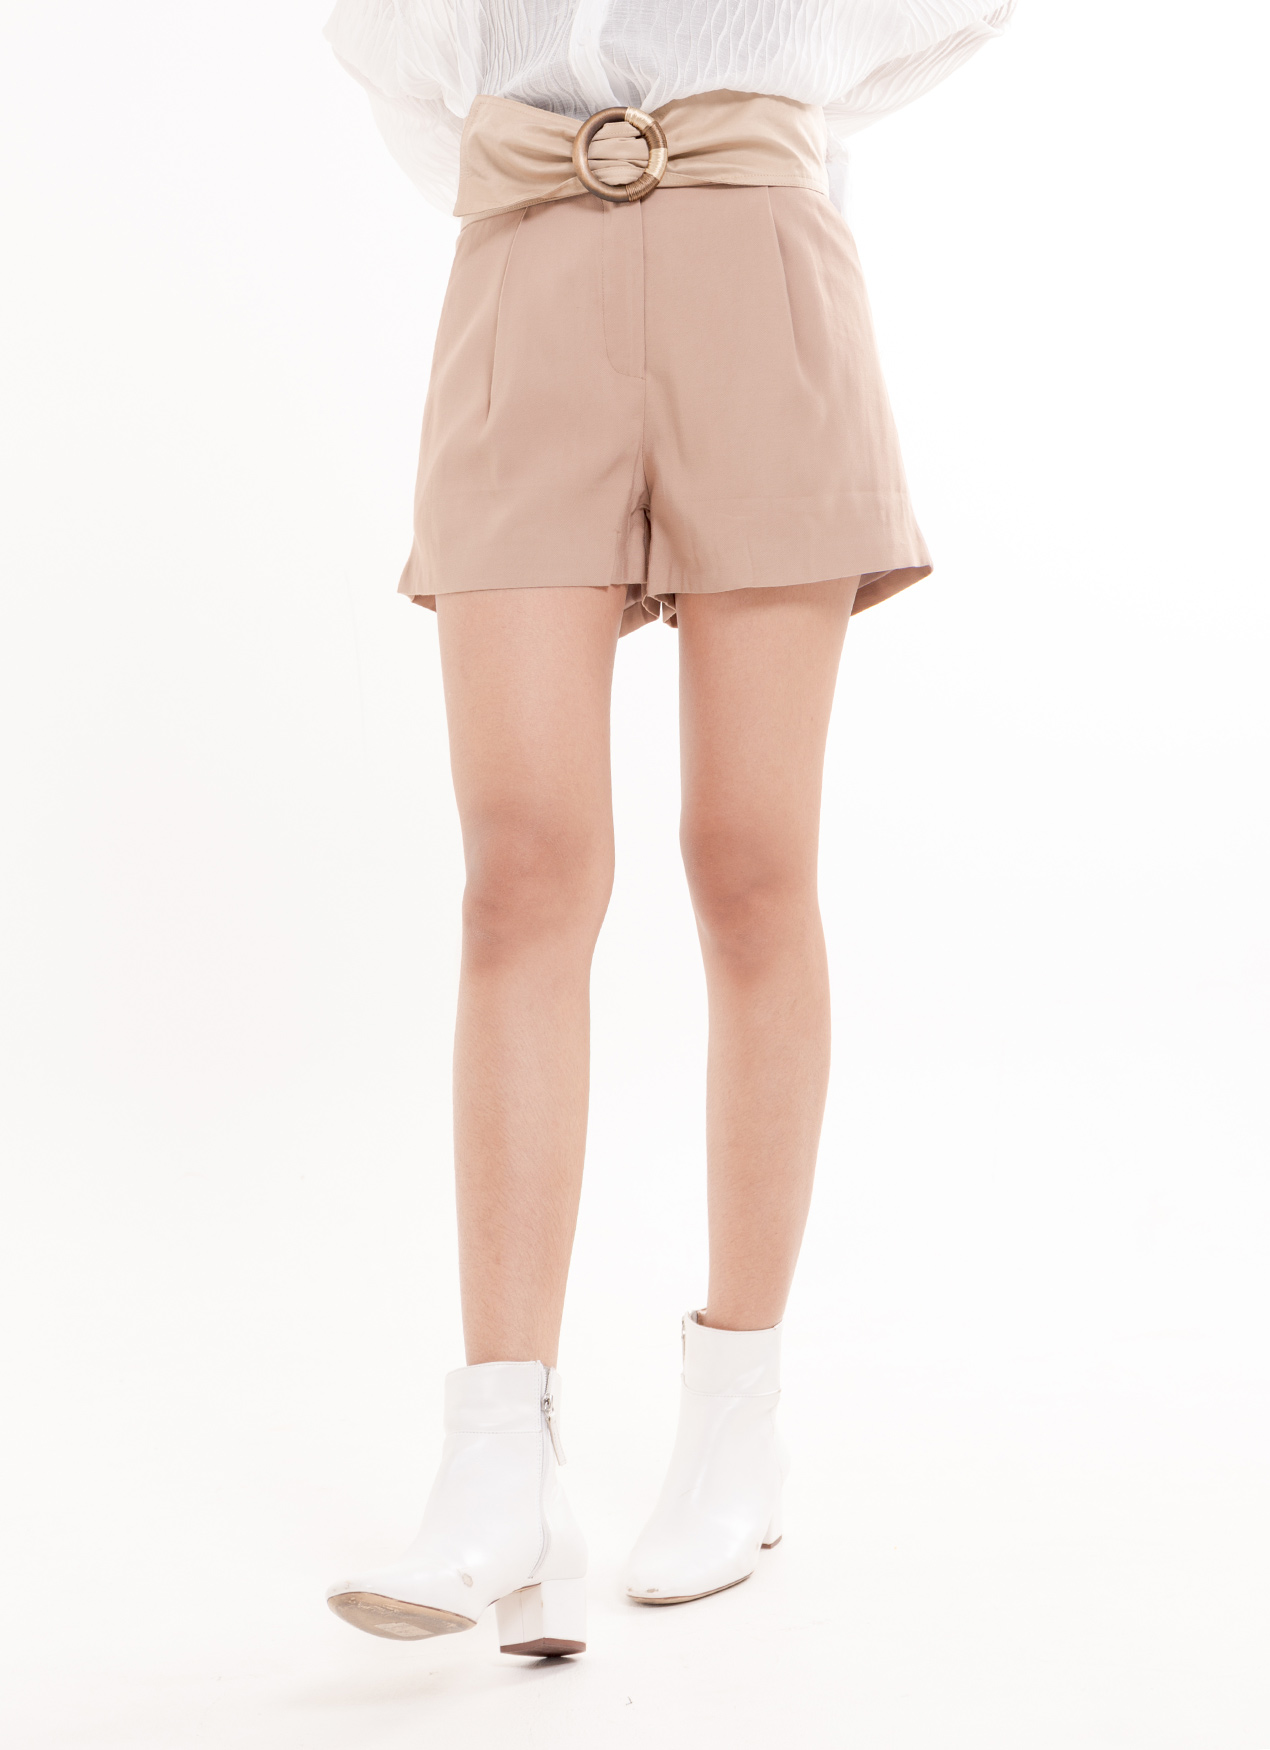 BOWN Naomi Pants - Brown